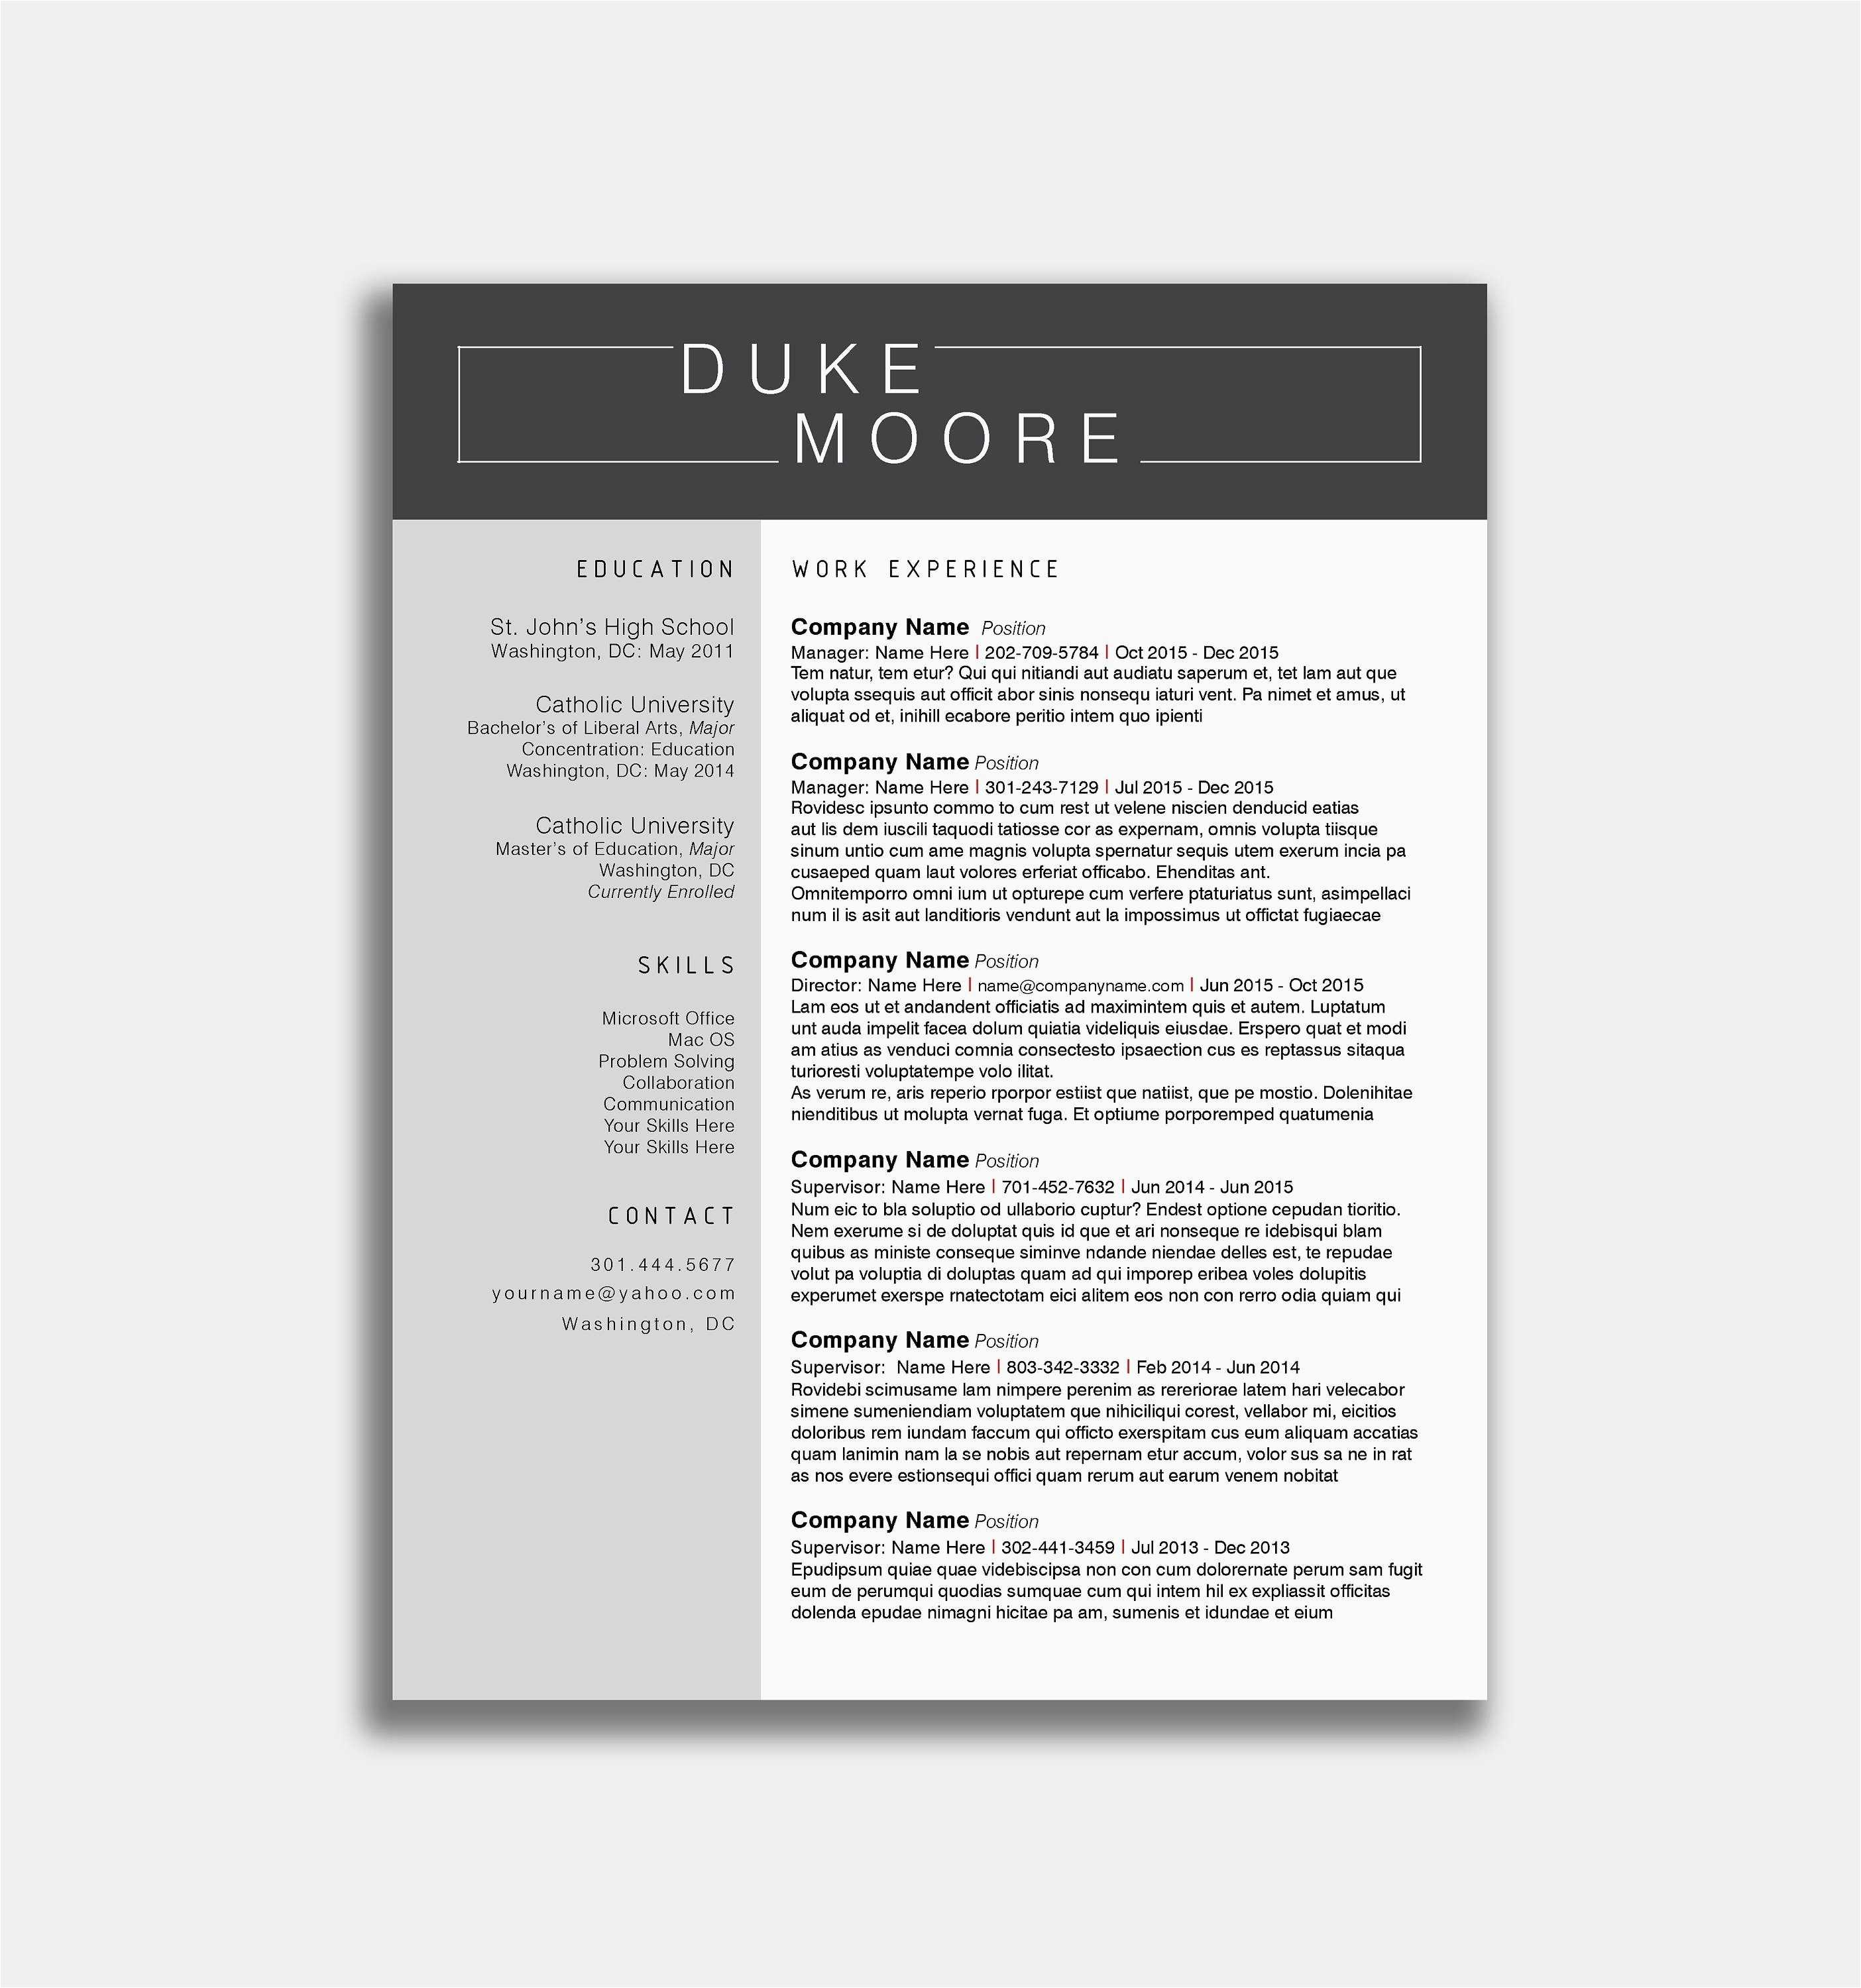 Free Resume Templates Download - Free Resume Templete Professional Creative Resume Best Awesome